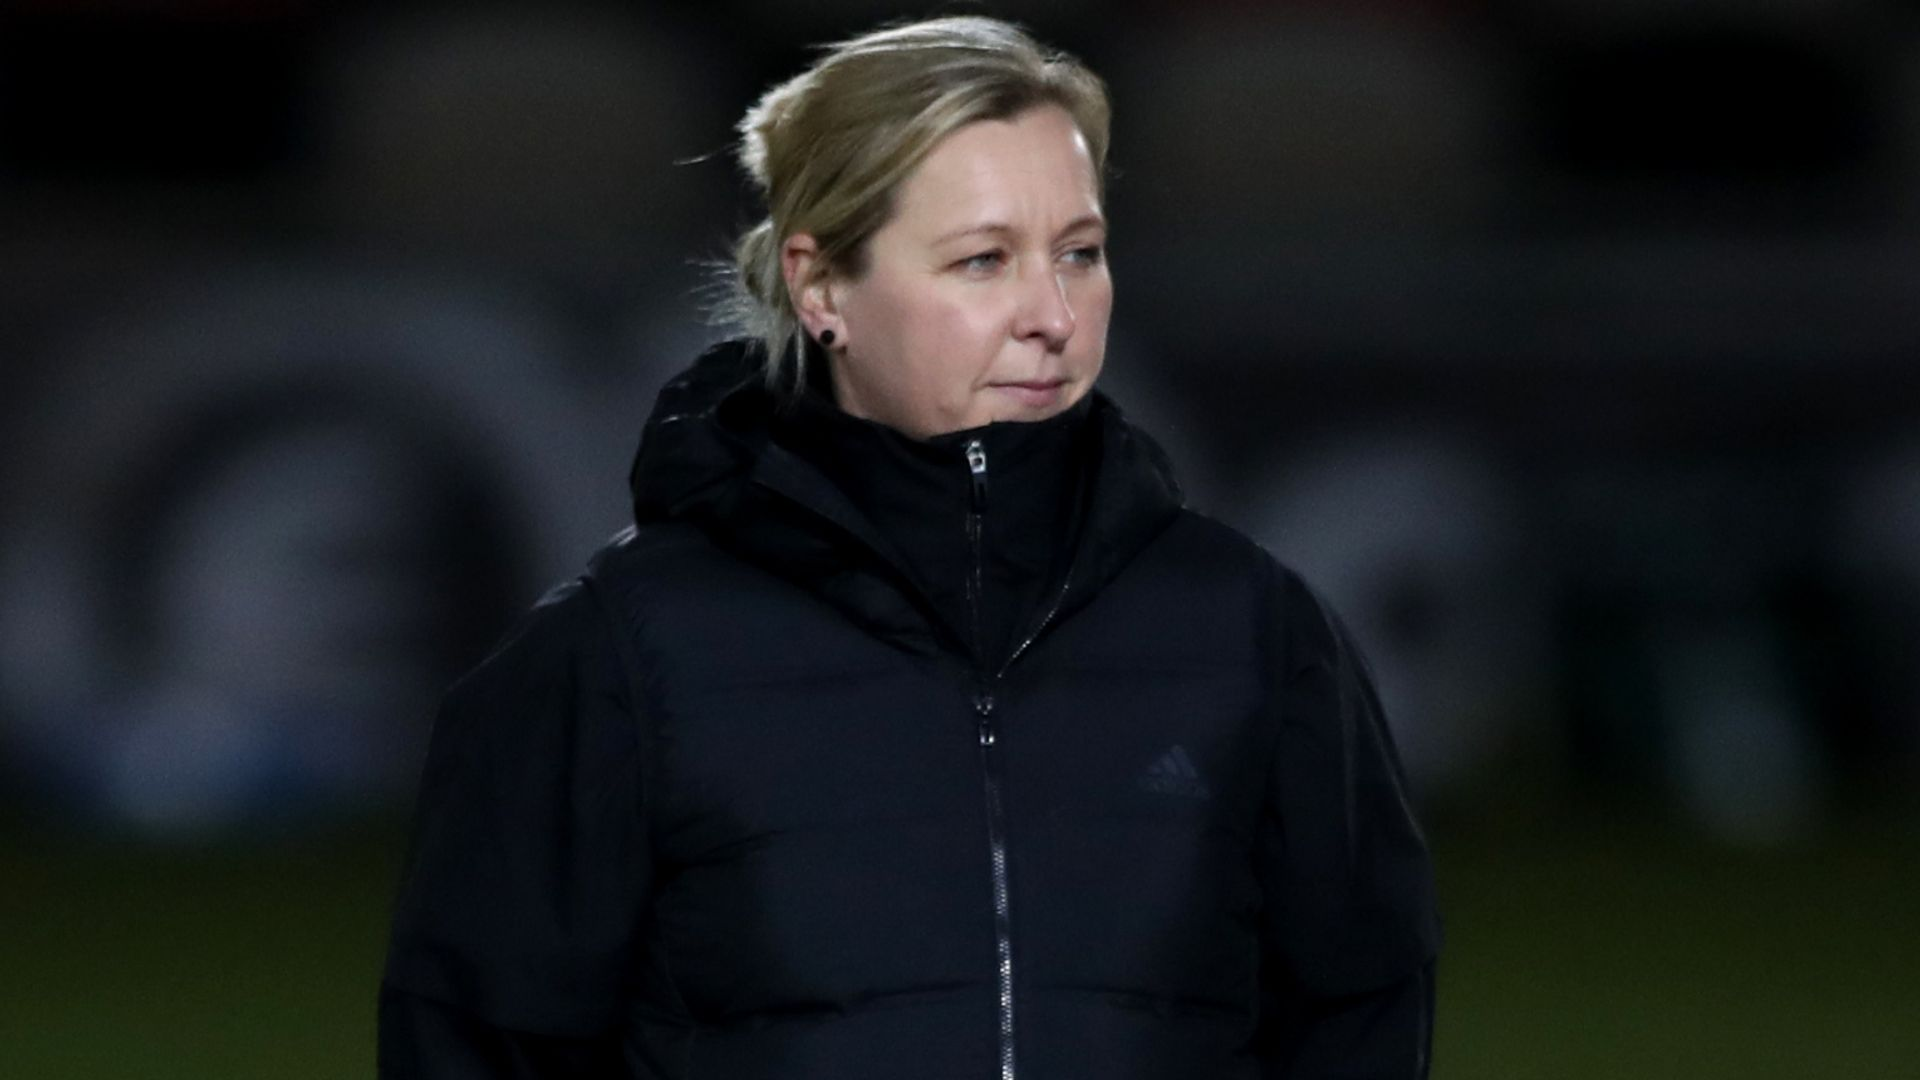 Ludlow leaves Wales Women manager role